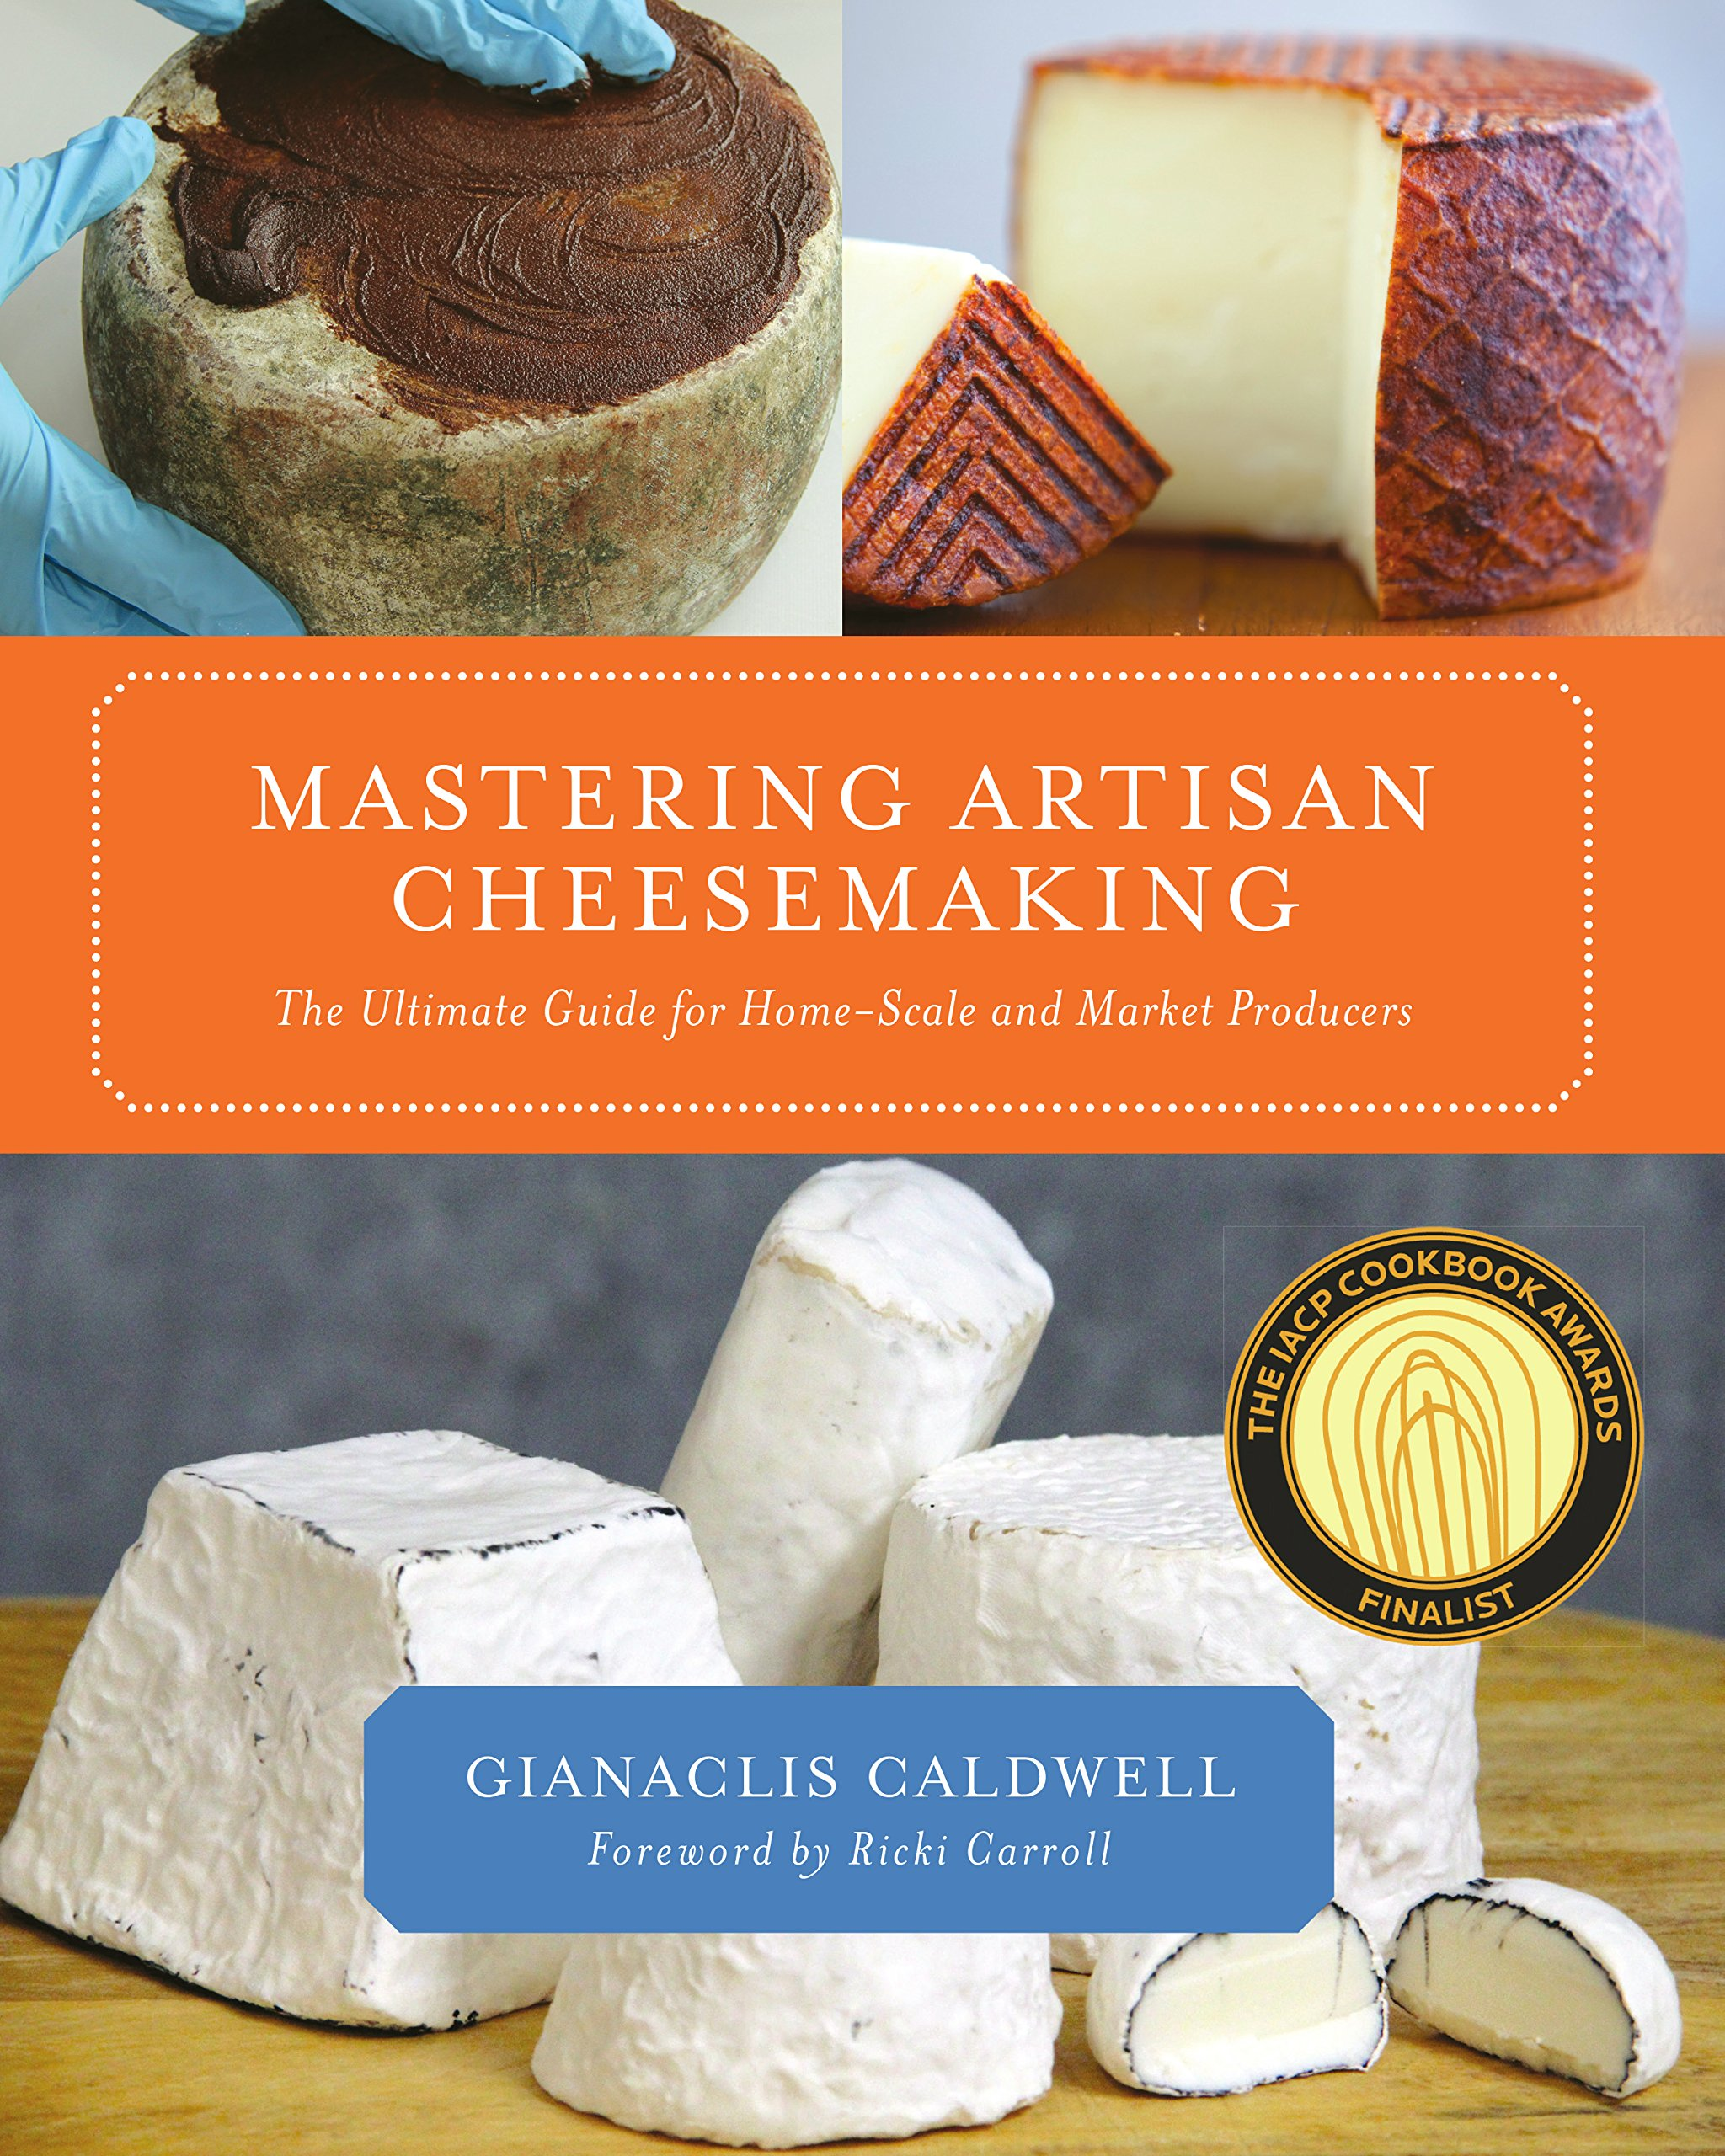 Mastering Artisan Cheesemaking: The Ultimate Guide for Home-Scale and  Market Producers: Gianaclis Caldwell, Ricki Carroll: 8601400513996:  Amazon.com: Books